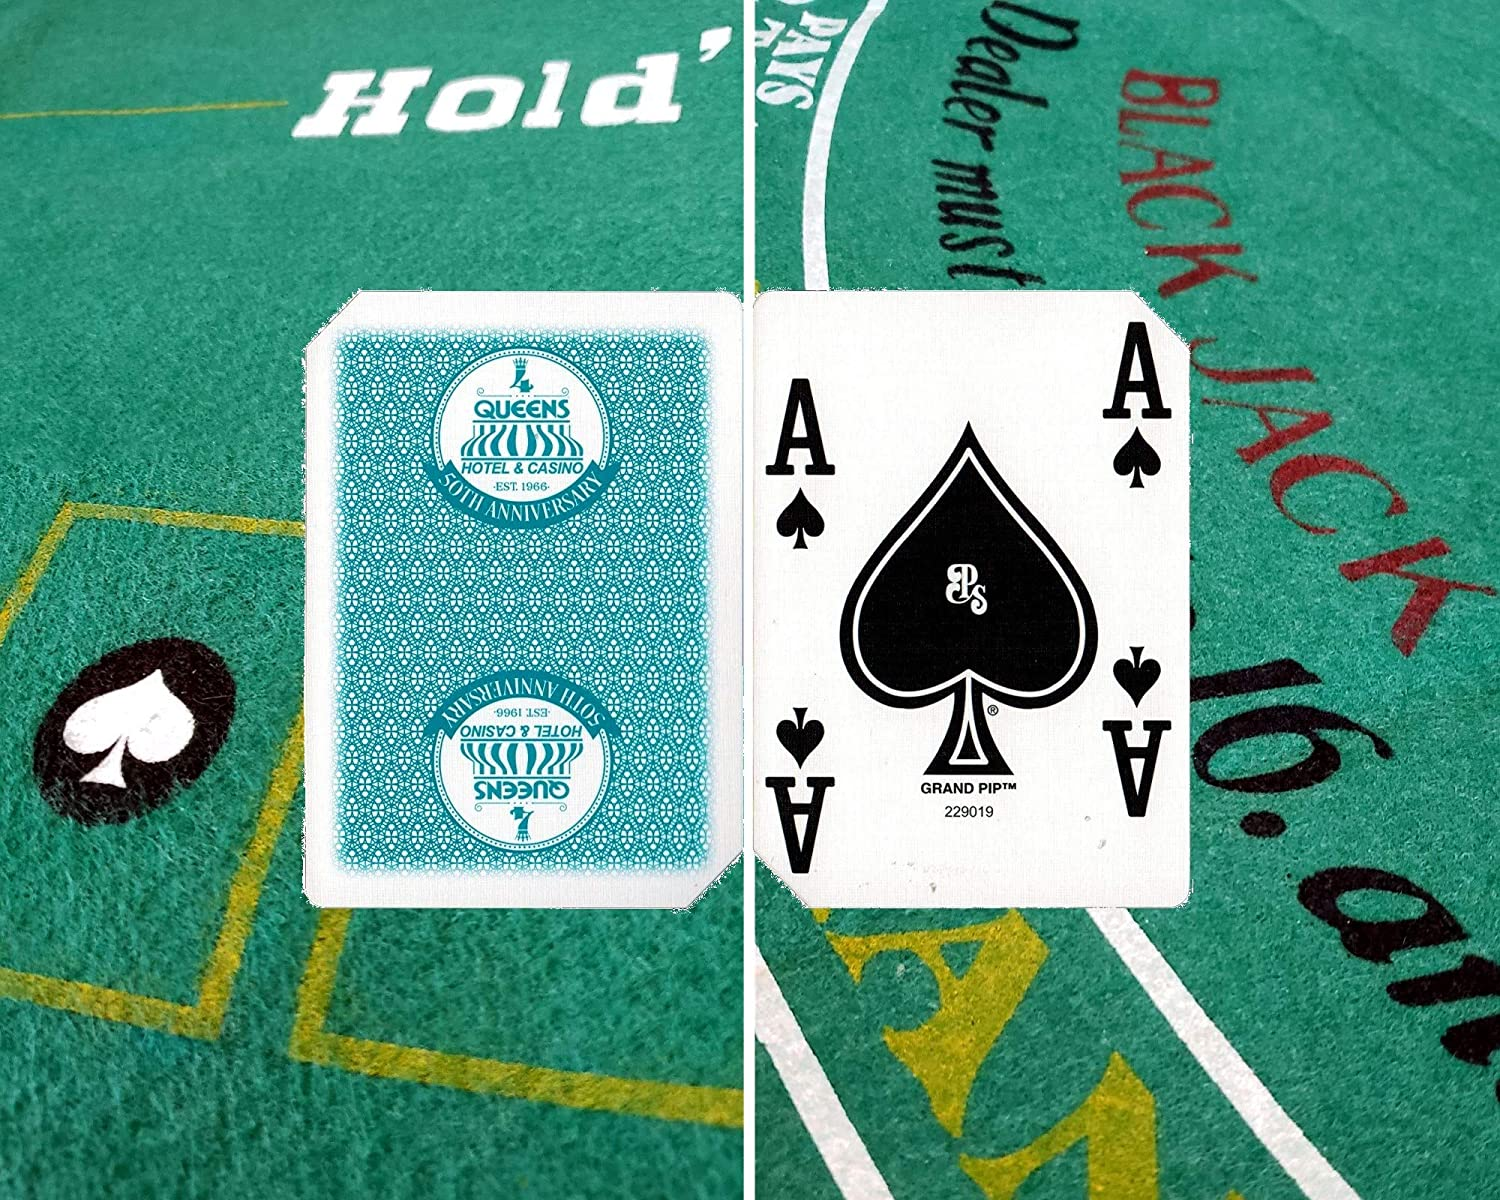 Green Cyber-Deals Wide Selection of Blackjack /& Texas Hold/'em Poker 2-Sided Premium Felt Layout 90cm x 180cm with Authentic Las Vegas Casino Table-Played Card Deck Four Queens